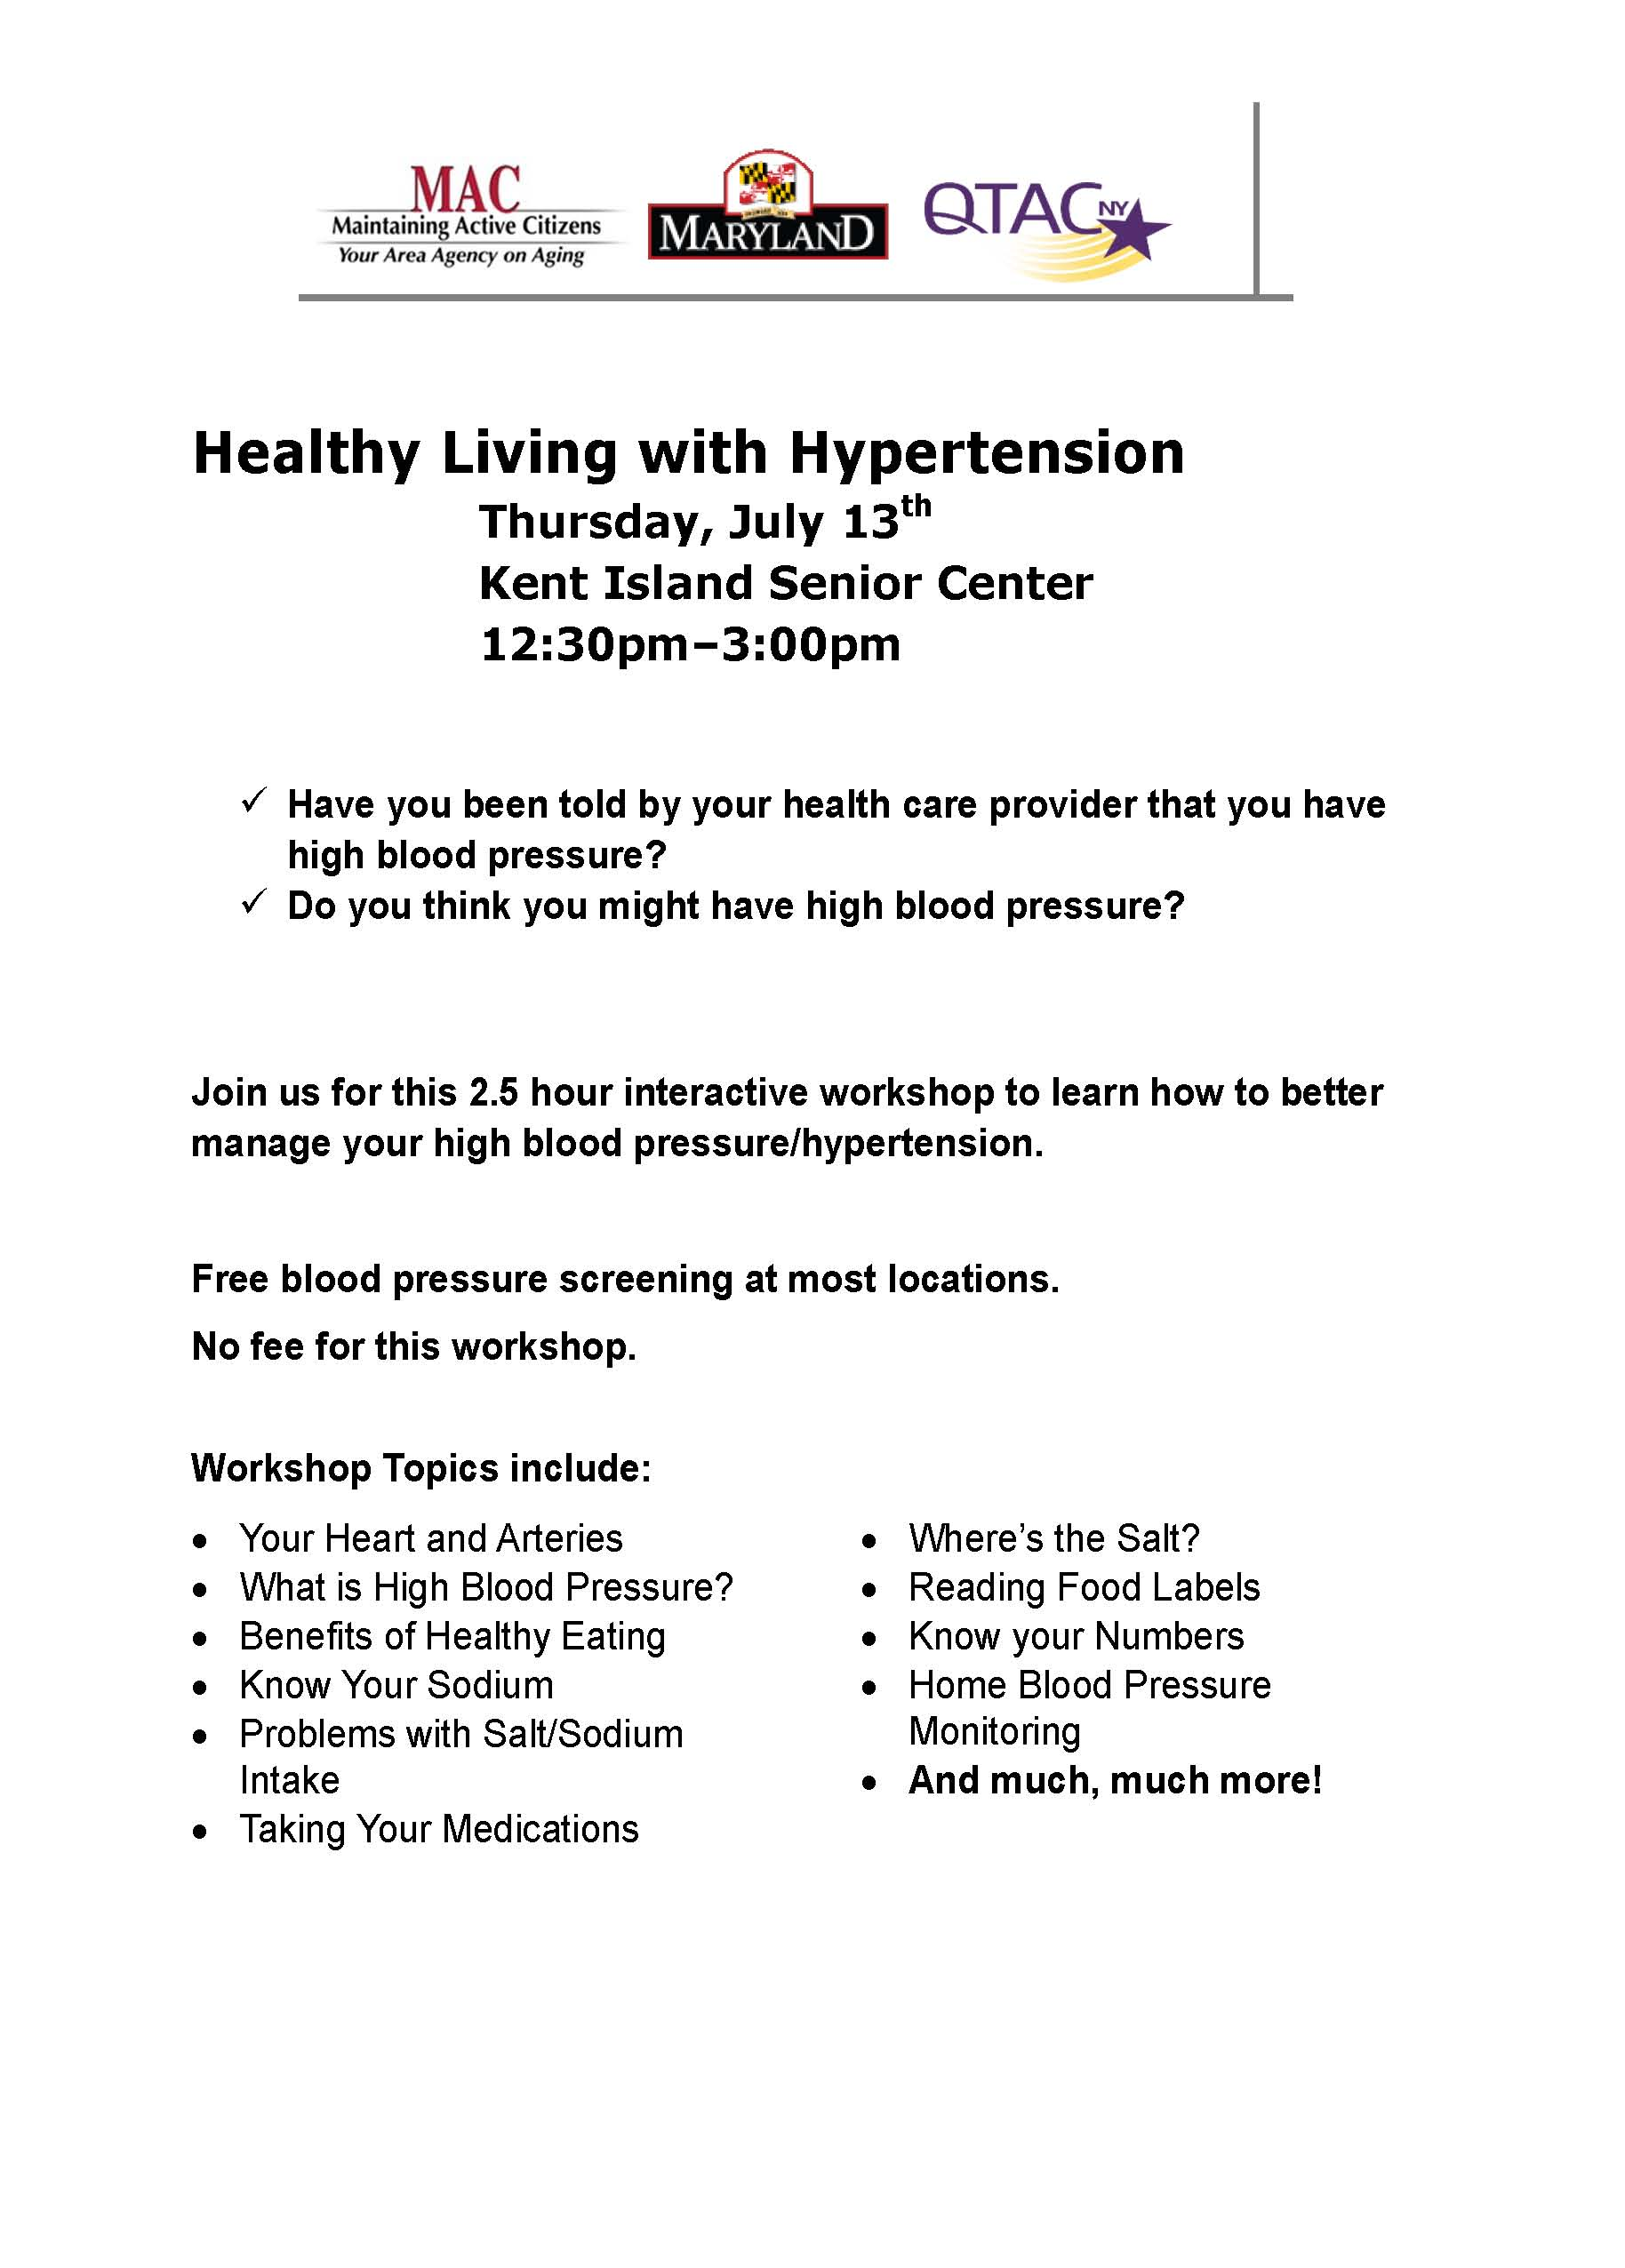 KISC Healthy Living with Hypertension